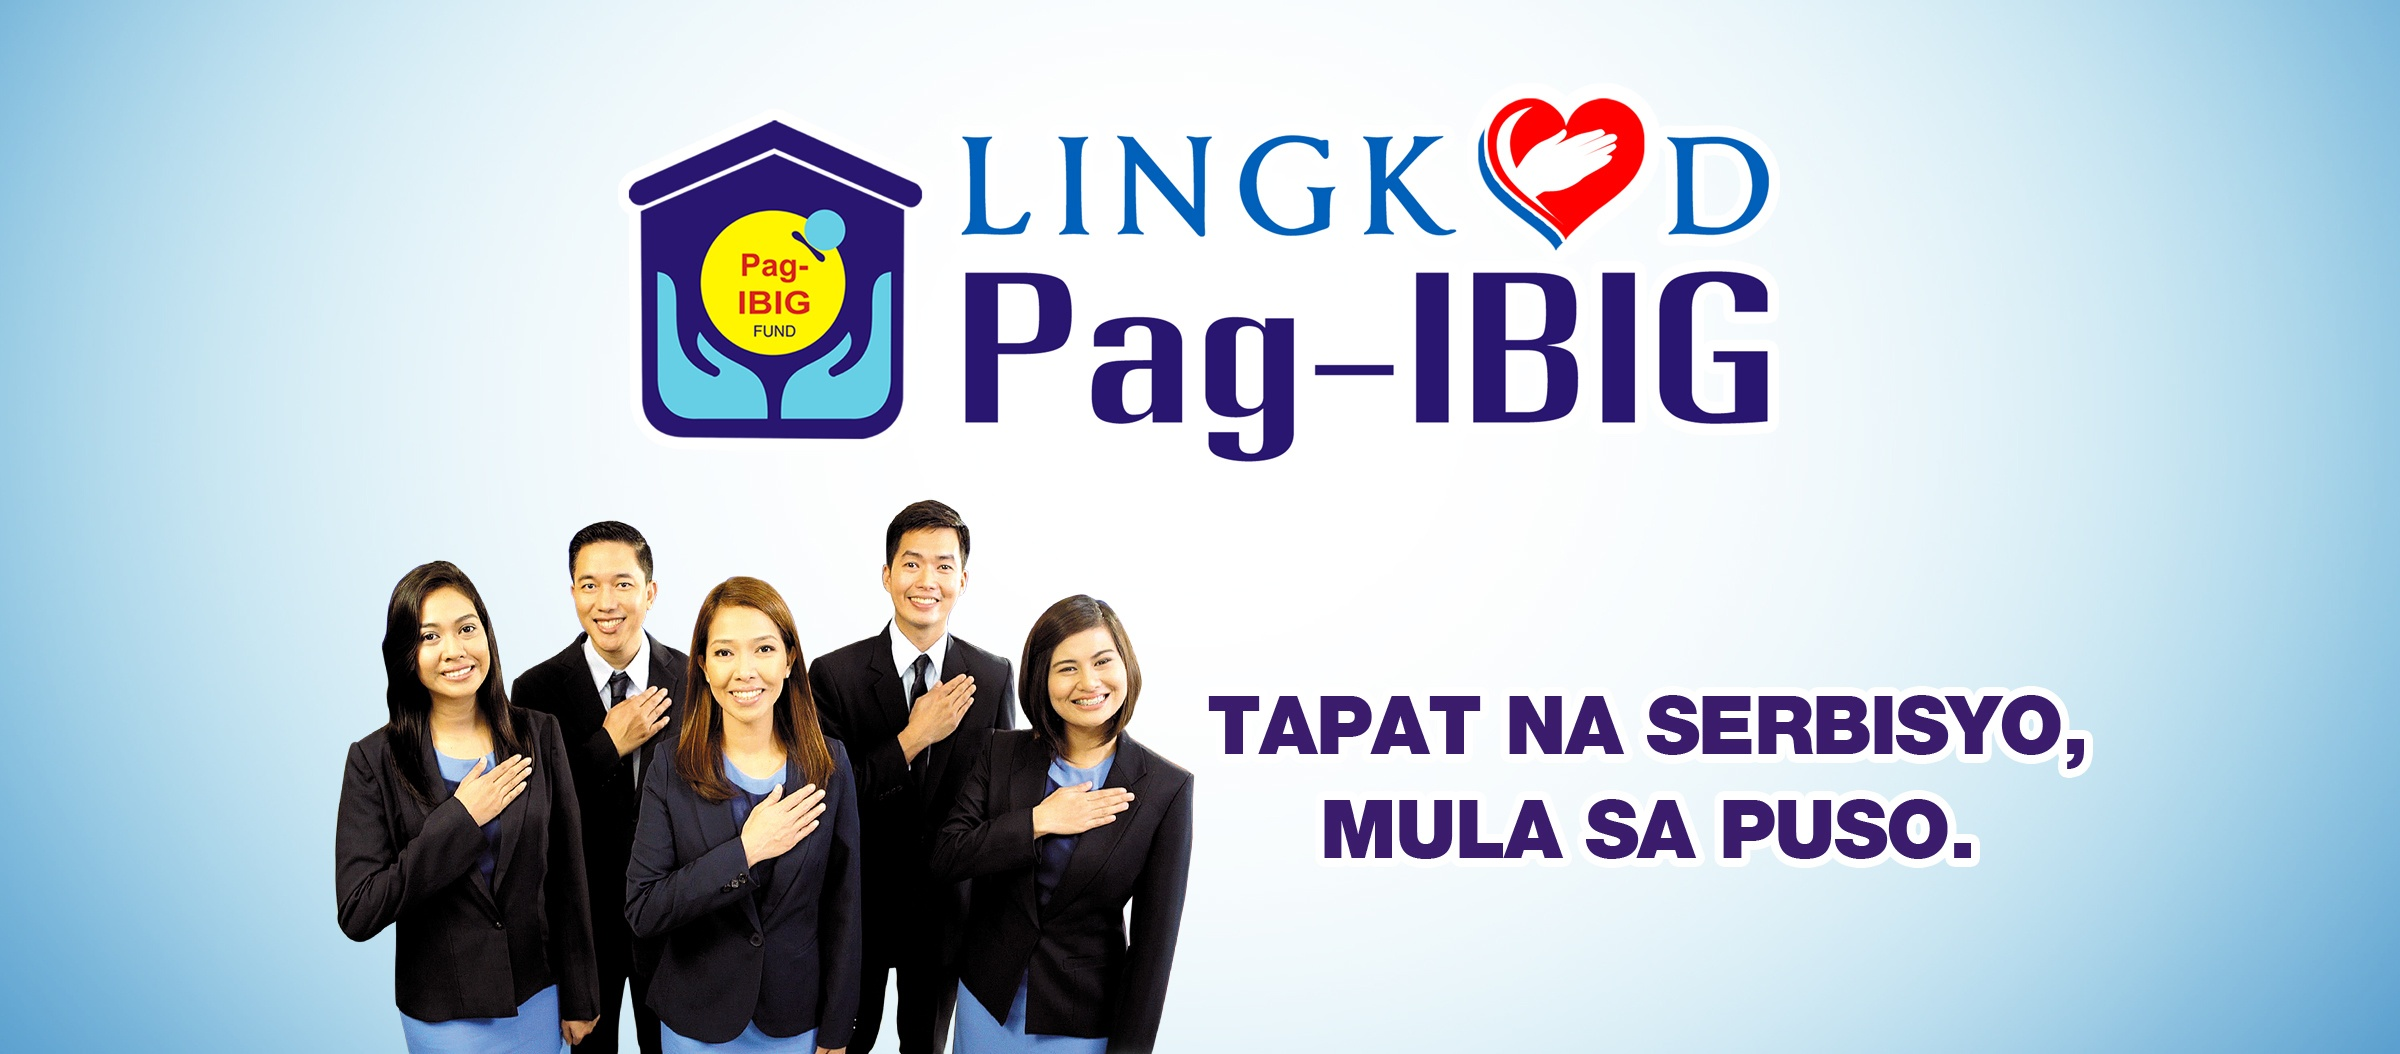 PAG IBIG Registration, Contribution, and Benefits